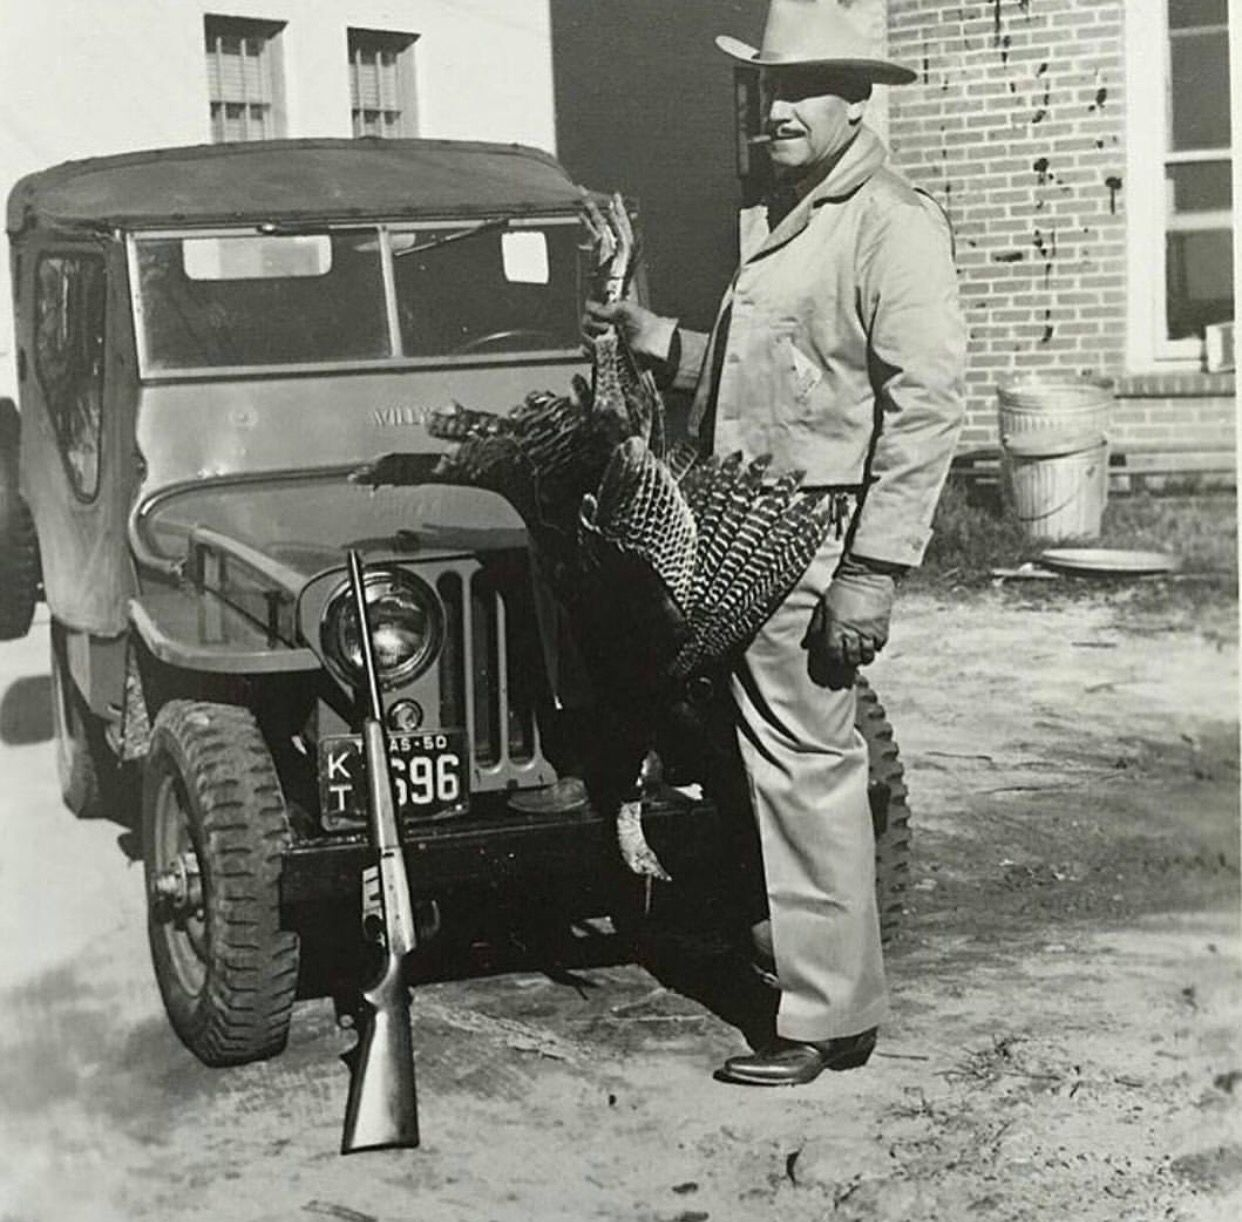 1940 S Jeep Guy Shoots Turkey Jeep Guys Jeep Memes Classic Jeeps